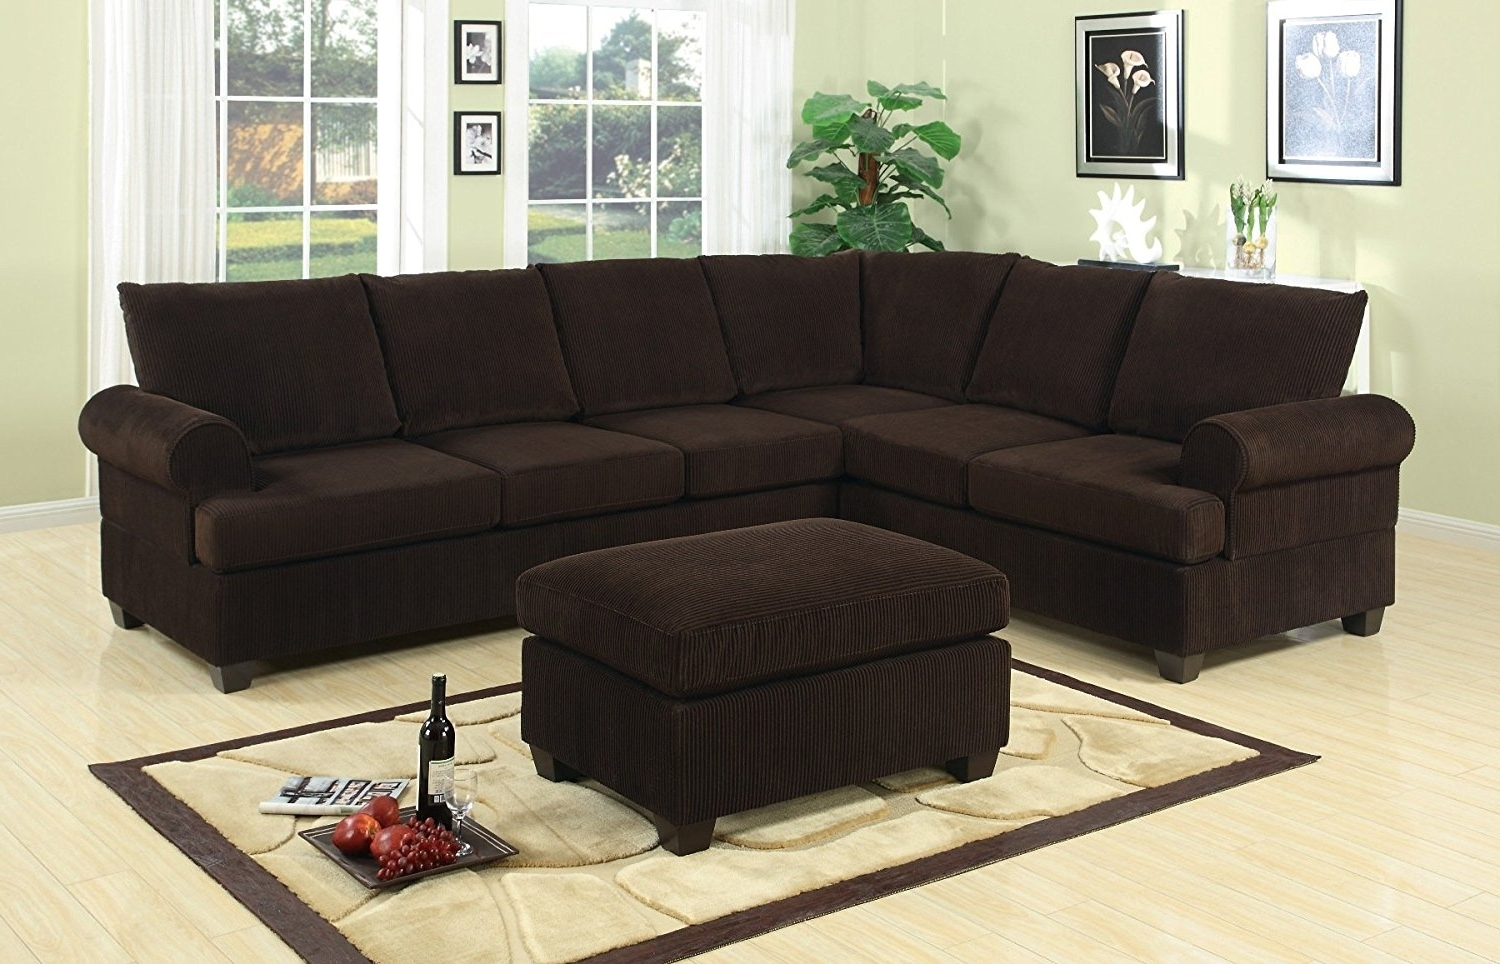 Fashionable Jacksonville Fl Sectional Sofas In Sectional Sofas Jacksonville Fl – Home And Textiles (View 9 of 20)